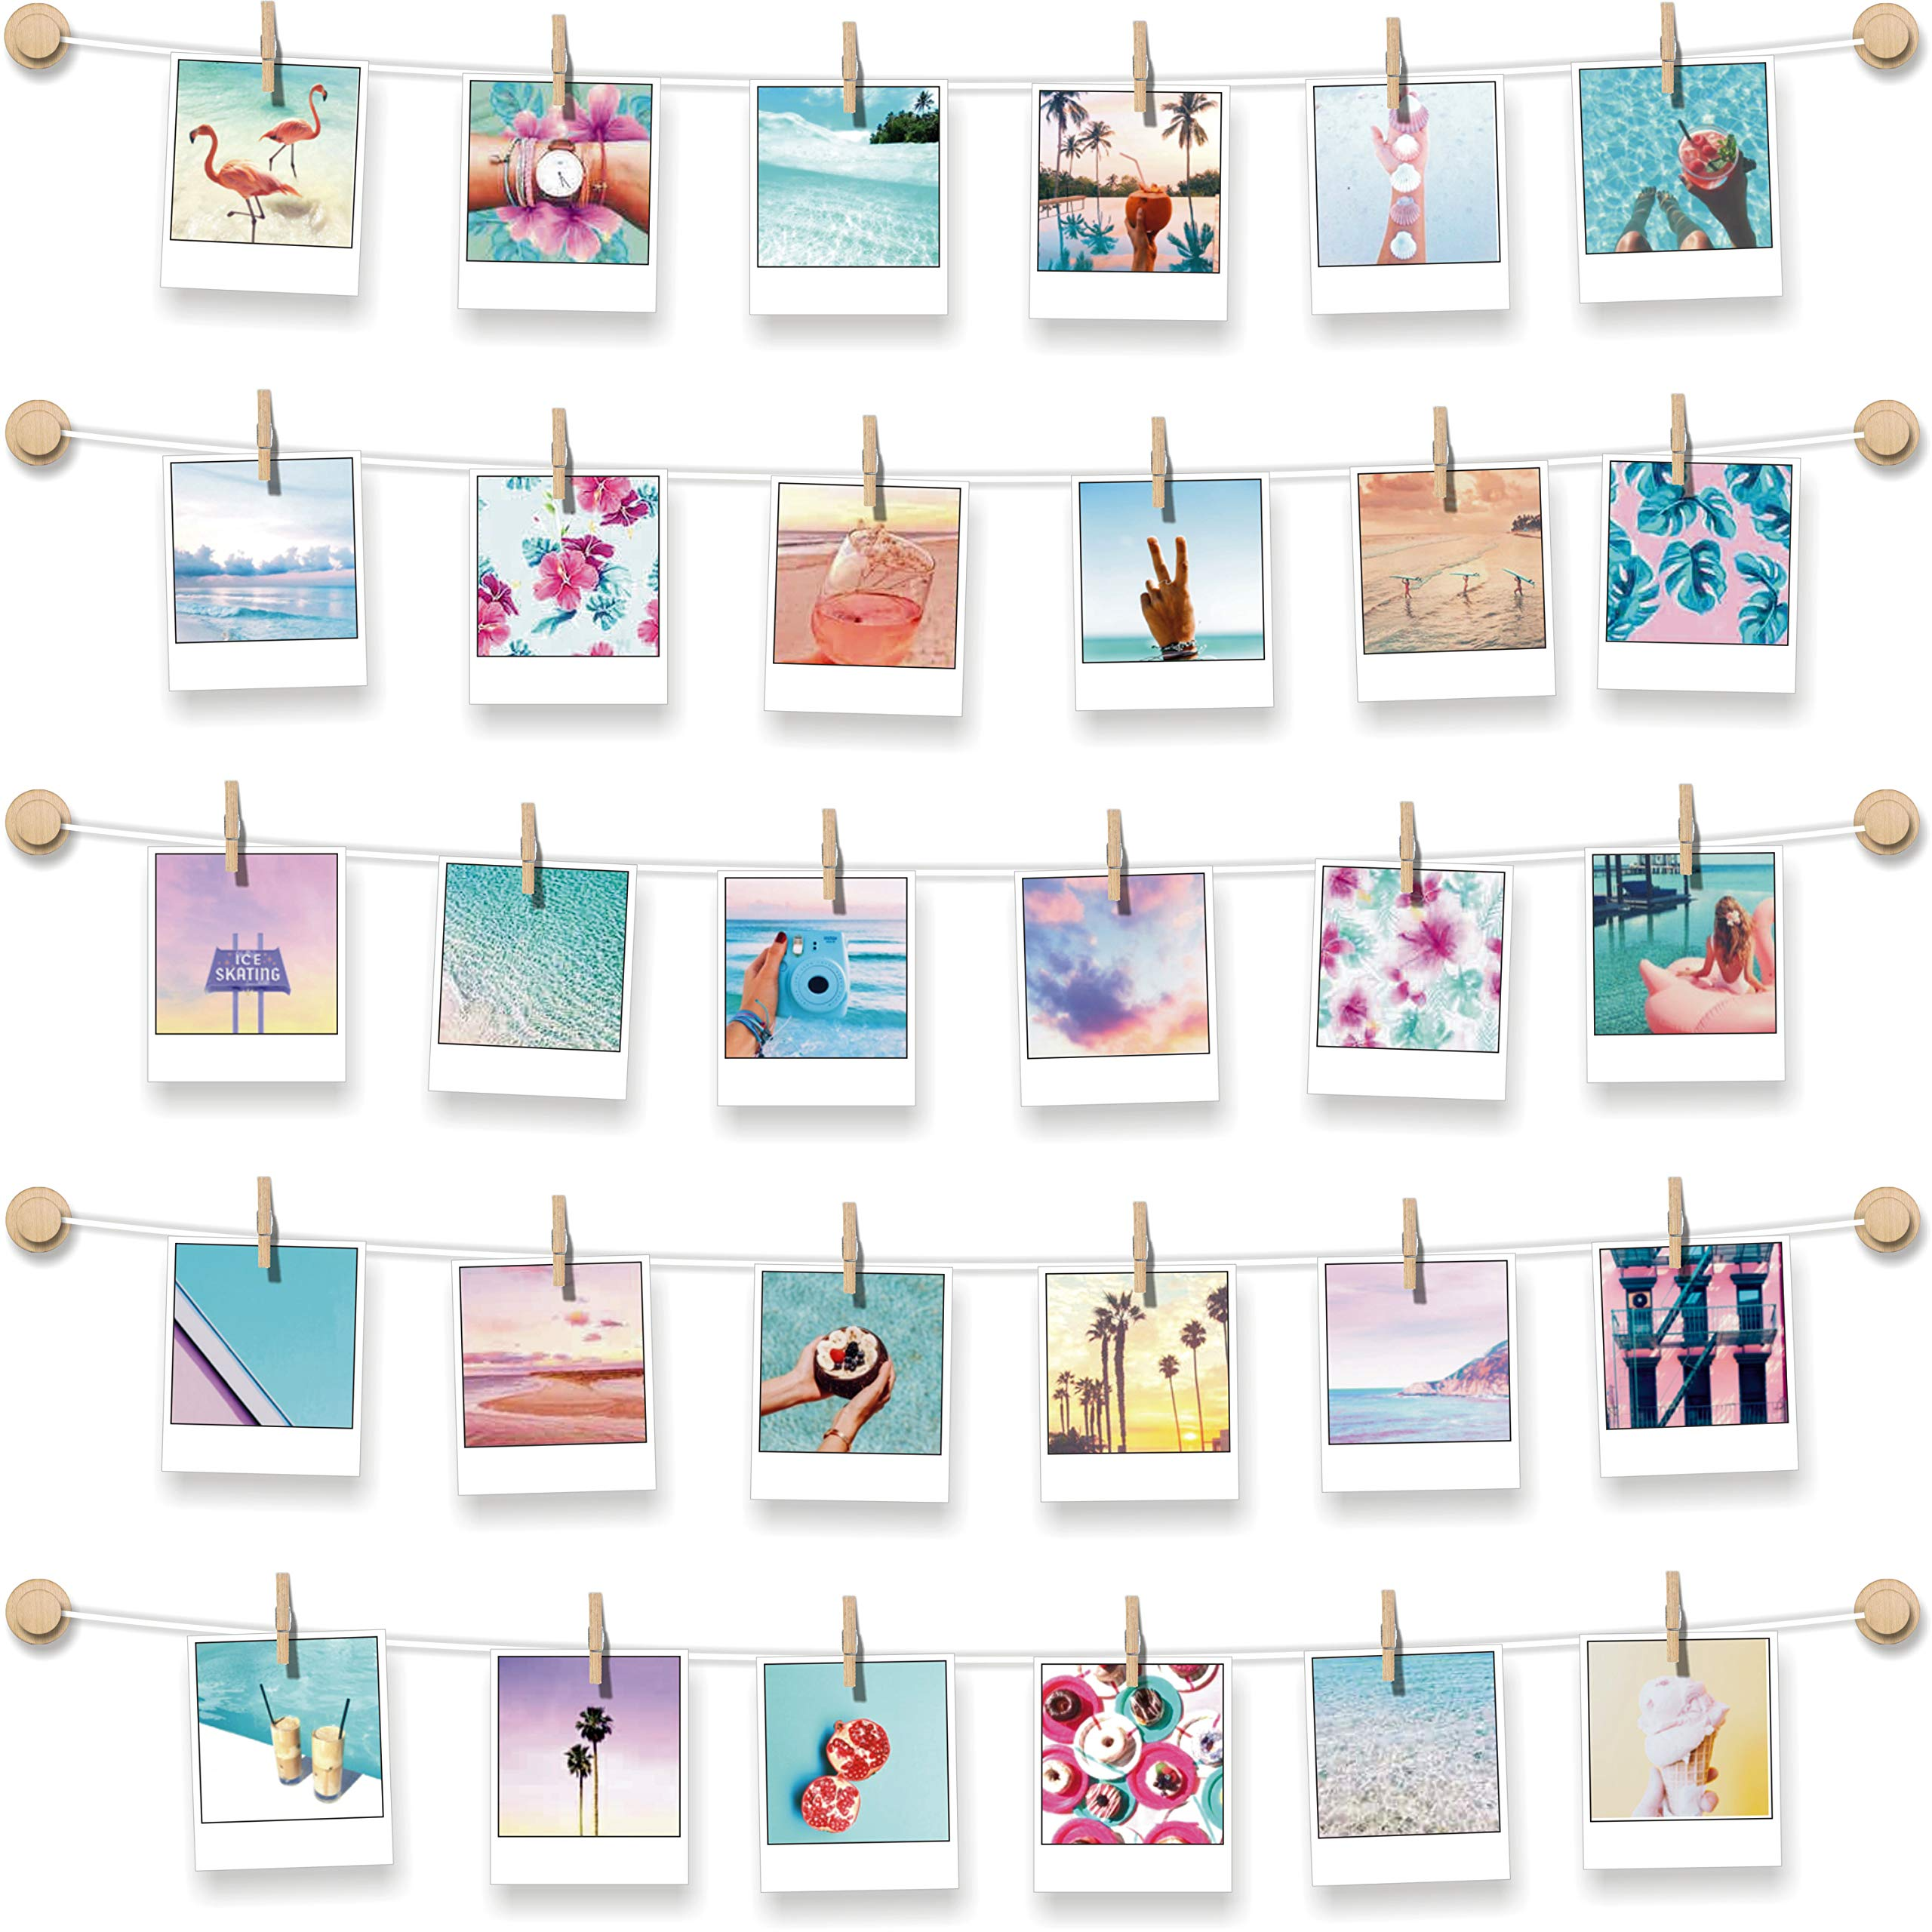 BIZYAC Instant Photo Display - Wall Hanging String with Clips - 3M Self Adhesive - Stick and Hang - No Wall Holes Drilling - 30 x 30 inch by BIZYAC